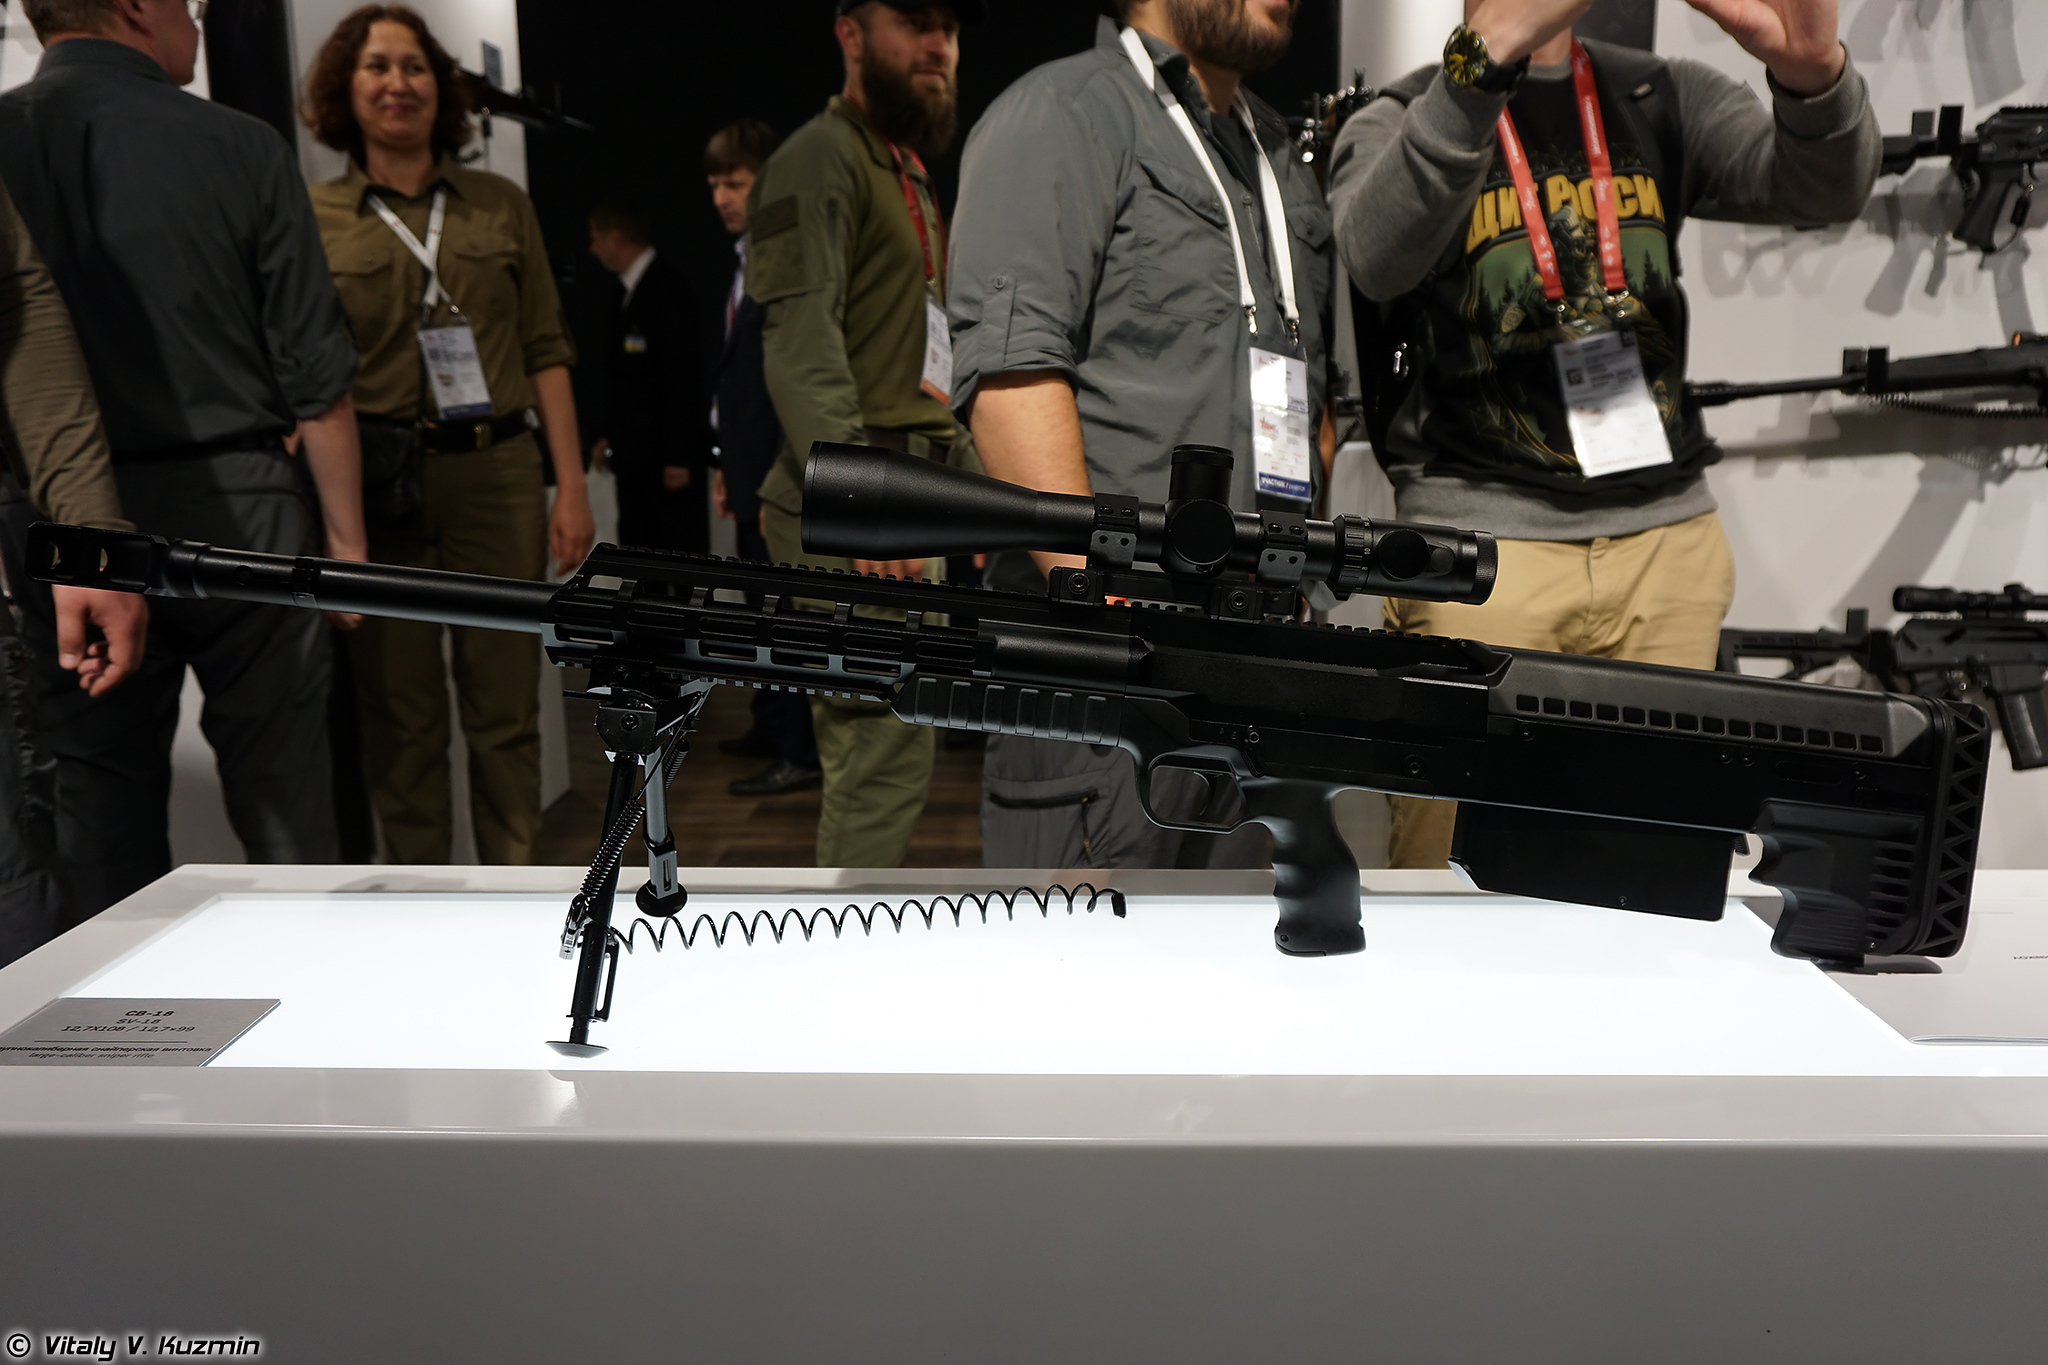 Russian Assault Rifles & Machine Guns Thread: #2 - Page 9 Army2019Pavilions-029-X4